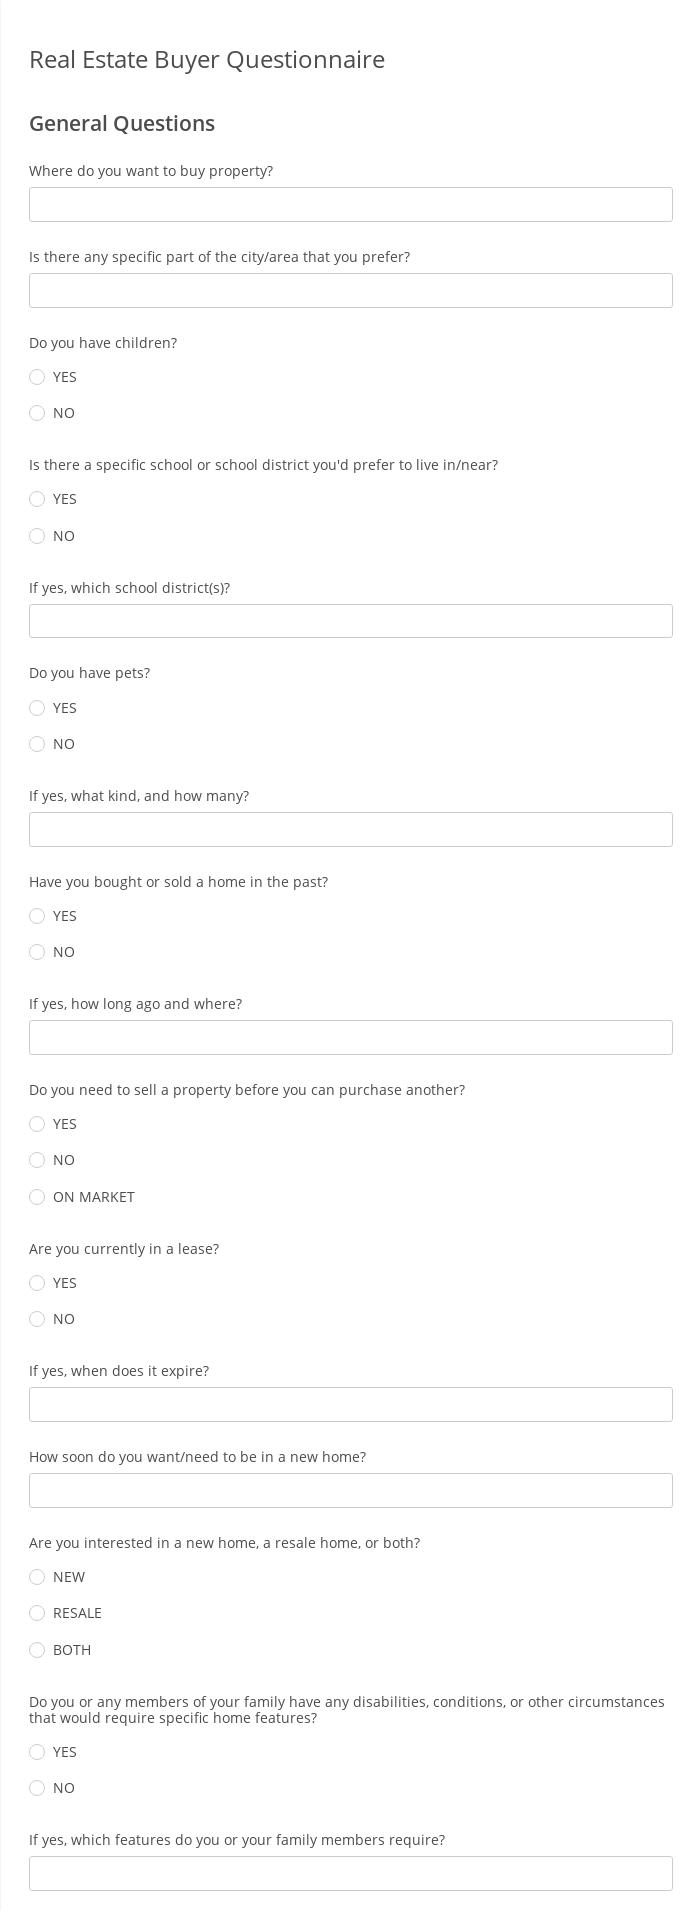 Real Estate Buyer Questionnaire